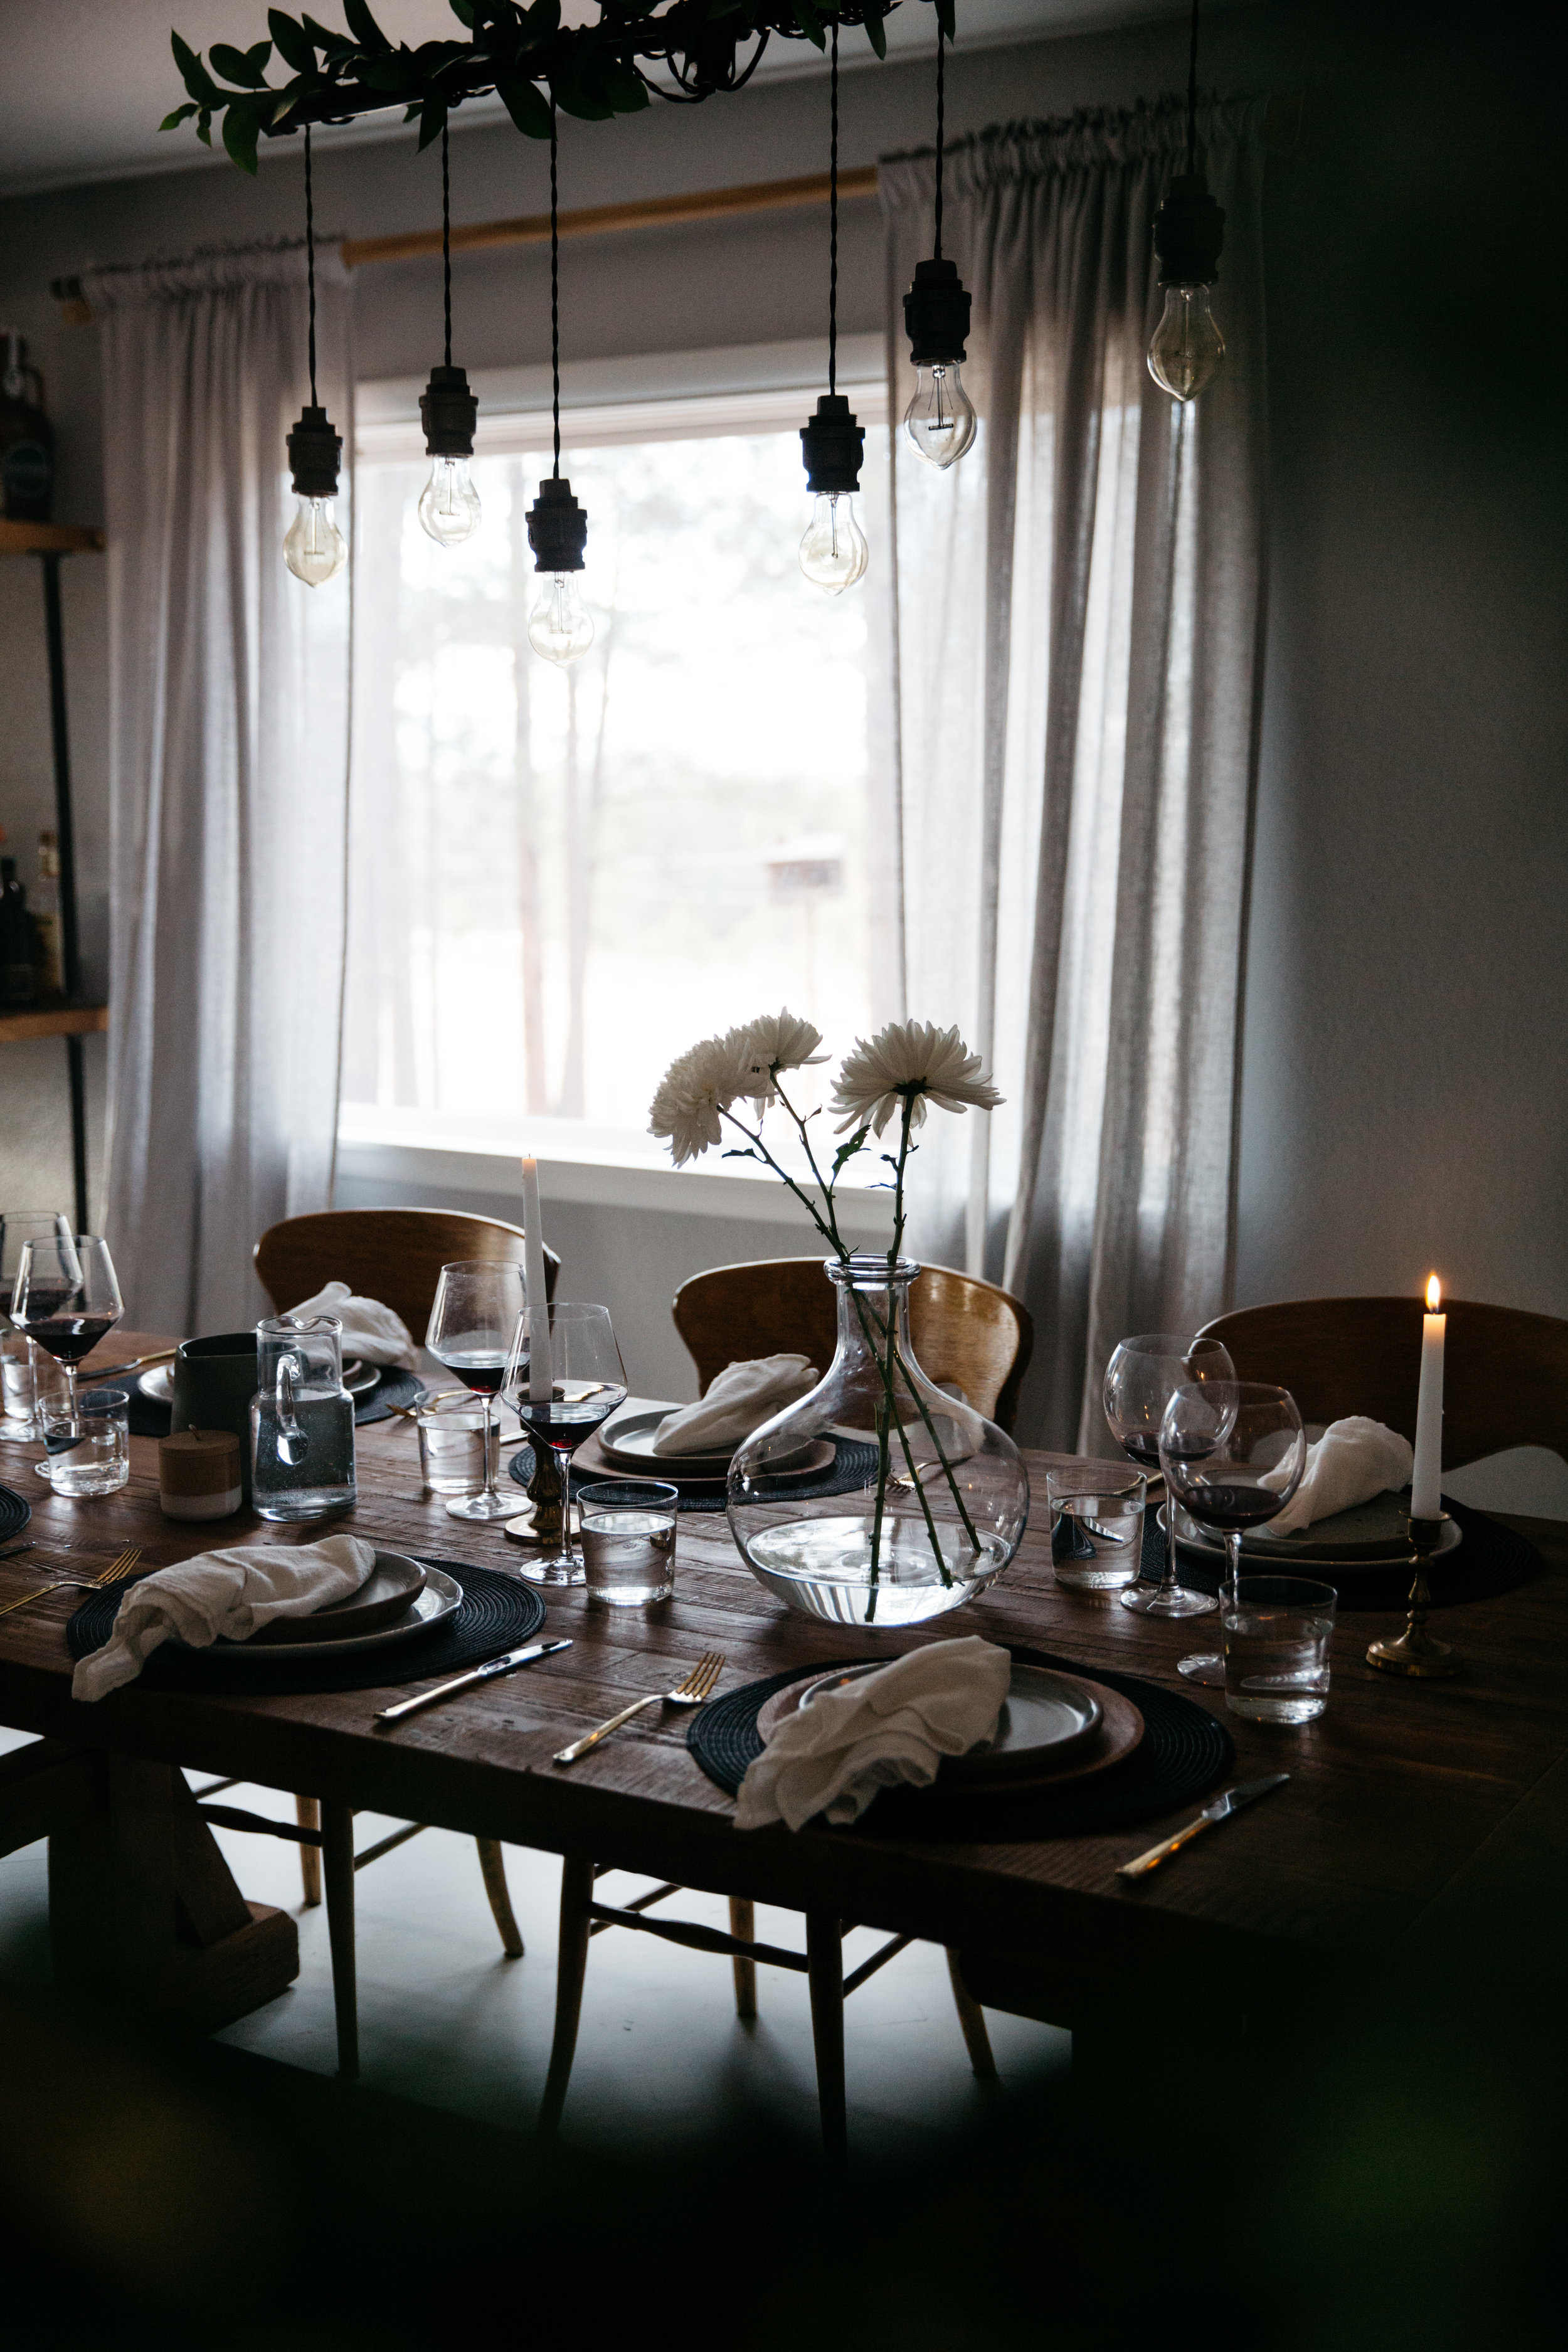 mitchell-dining-room-after-1.jpg